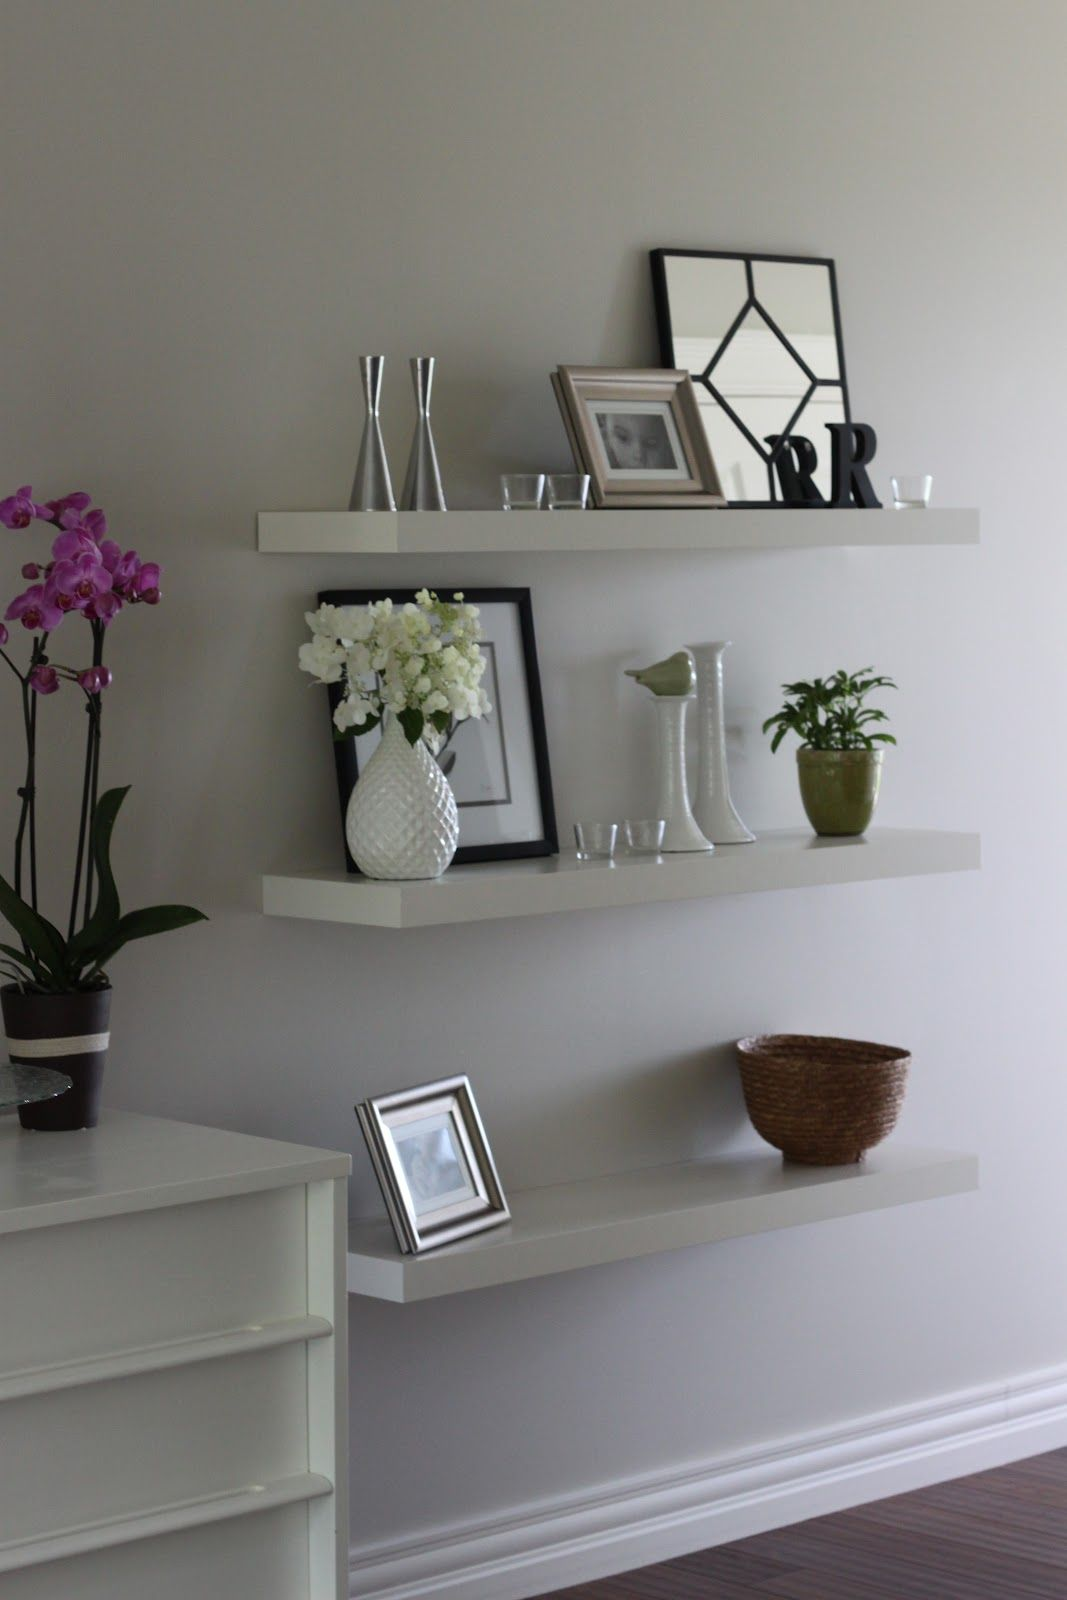 floating shelves fill empty space kristen kluk need white living room this beside our small shelf with lip hanging metal shelving unit laptop desk drawers cardboard garage deep